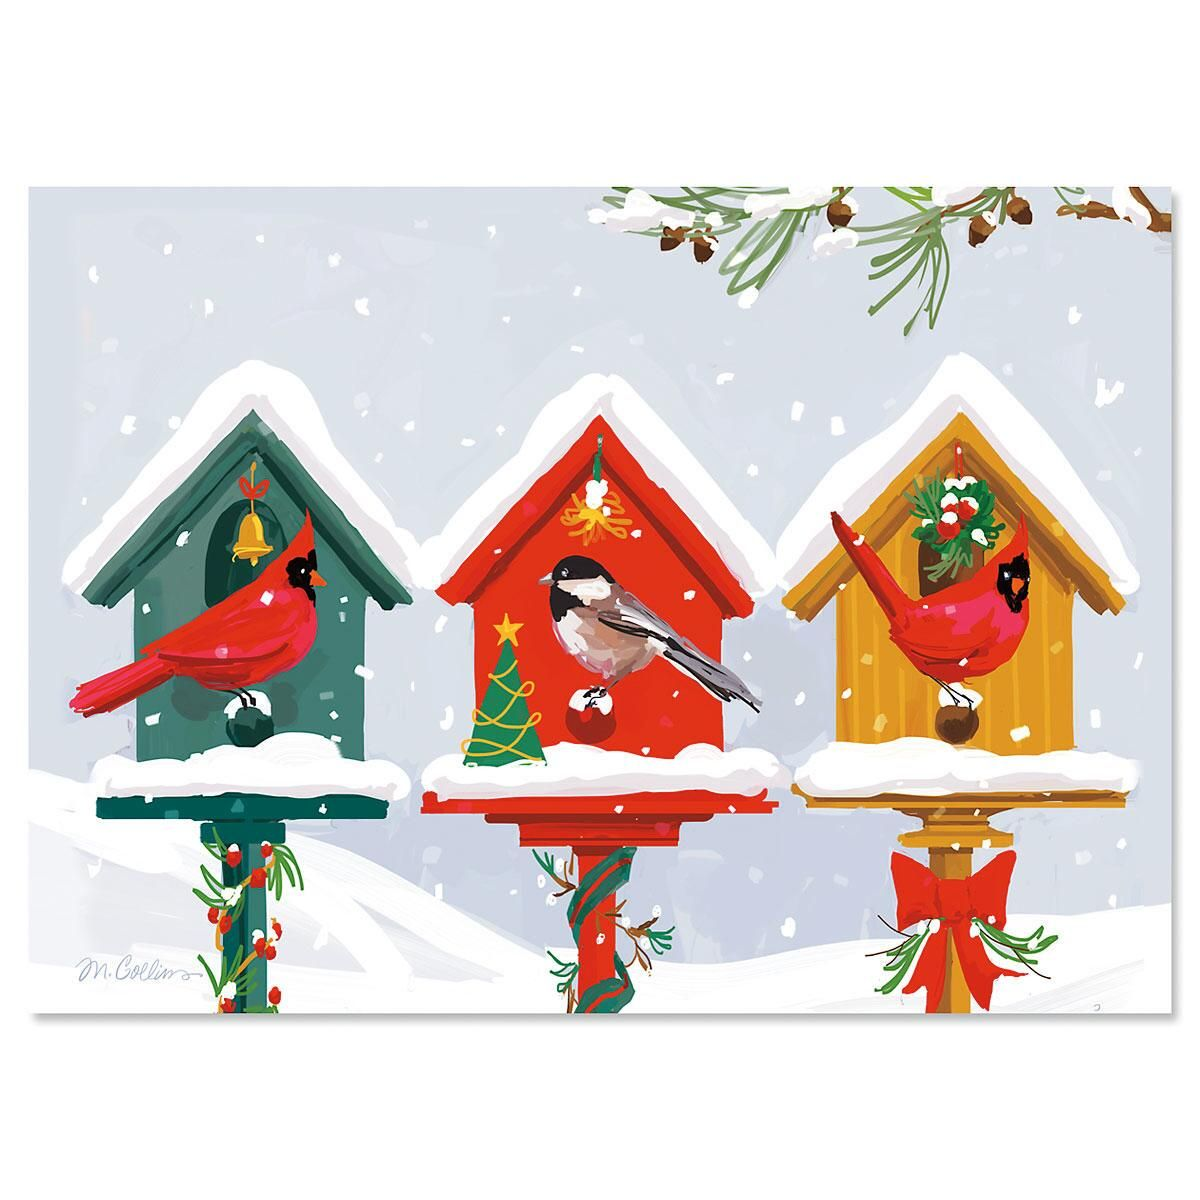 Holiday Birdhouse Personalized Christmas Cards - Set of 18